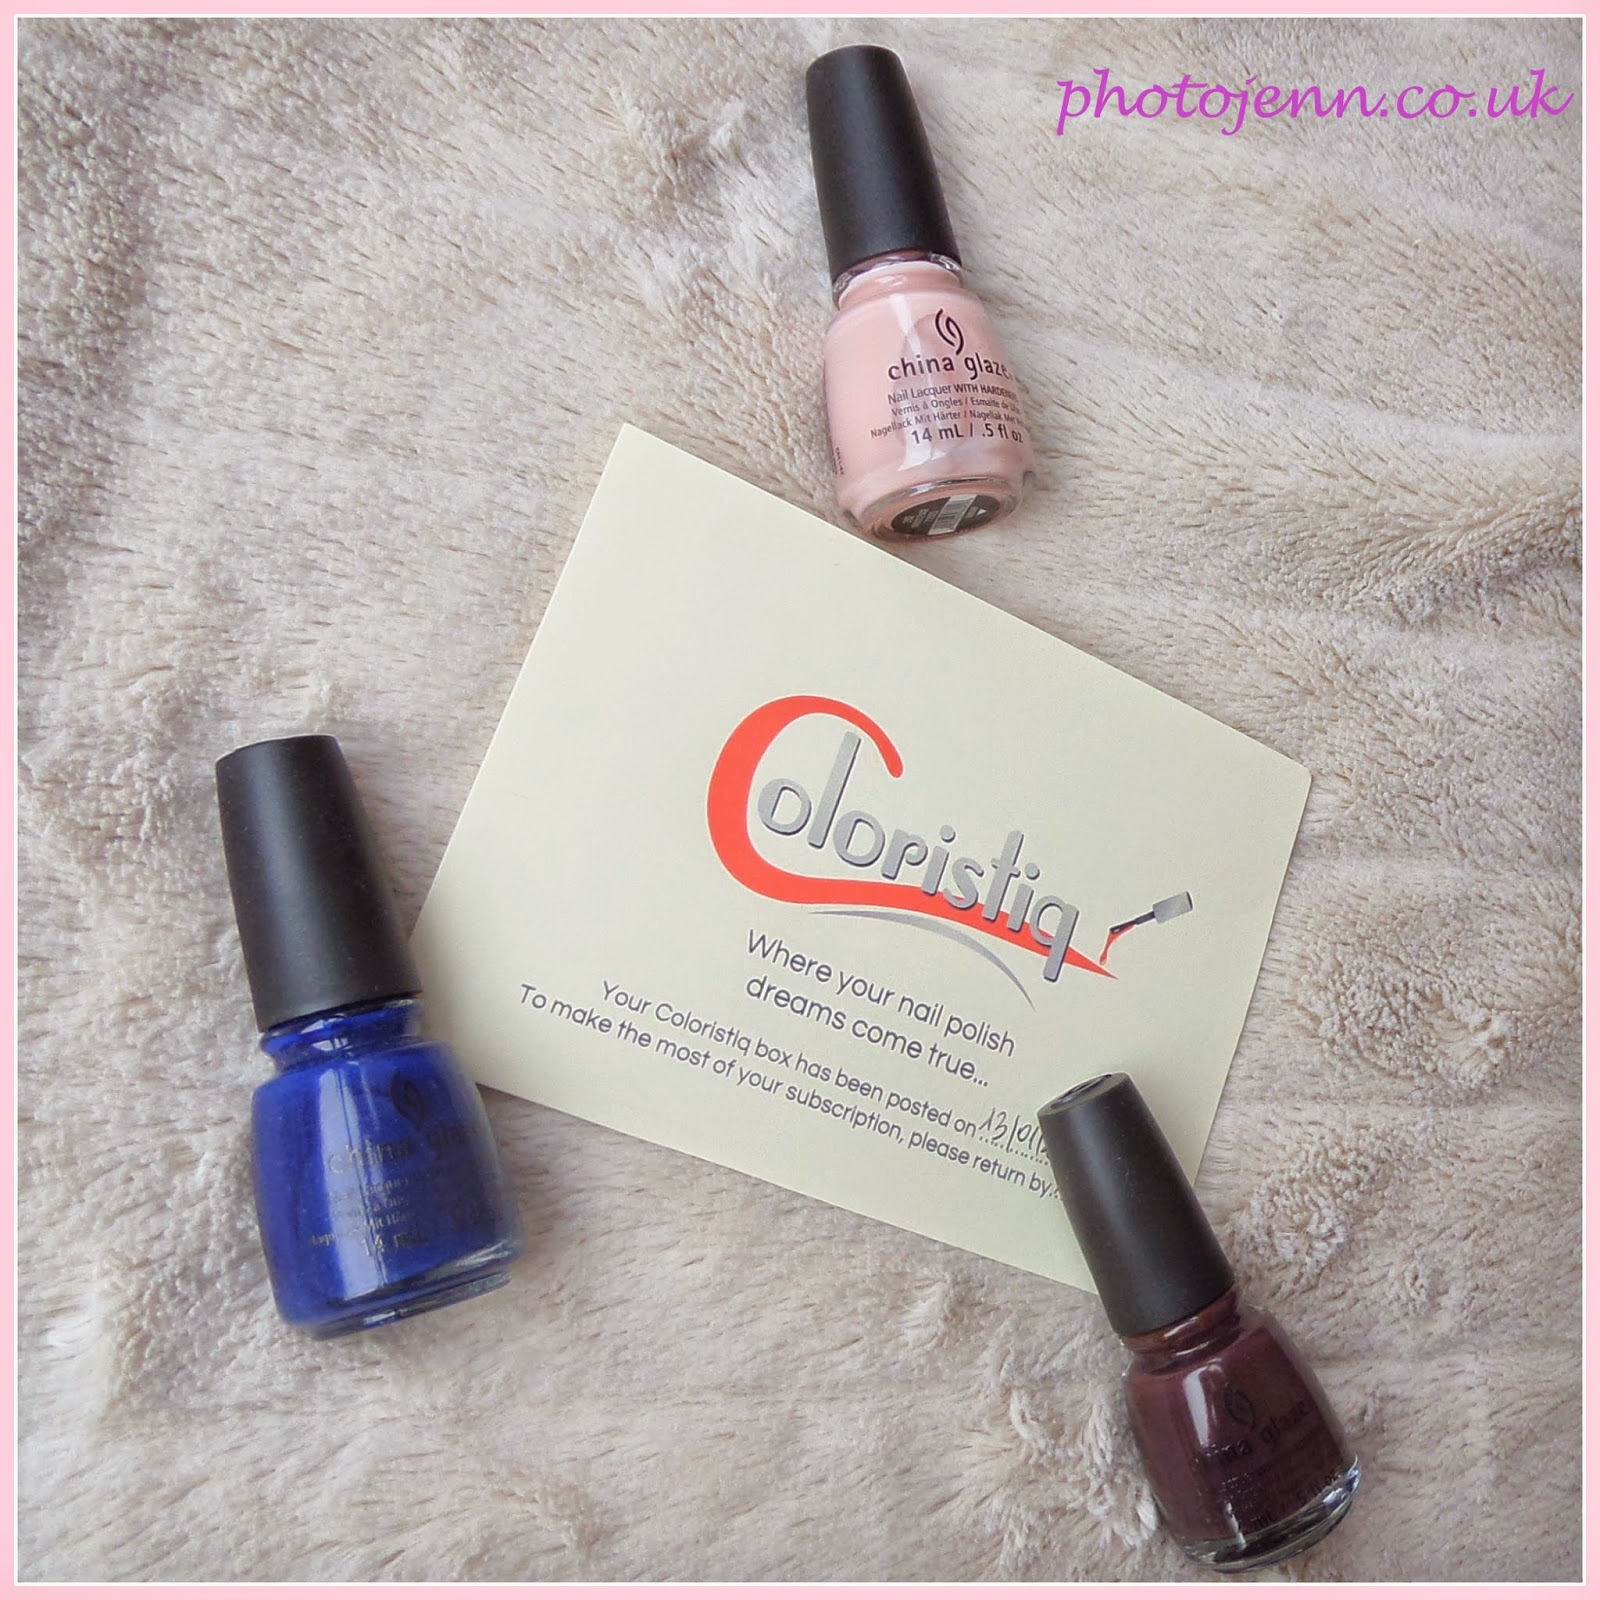 coloristiq-nail-polish-monthly-subscription-box-nails